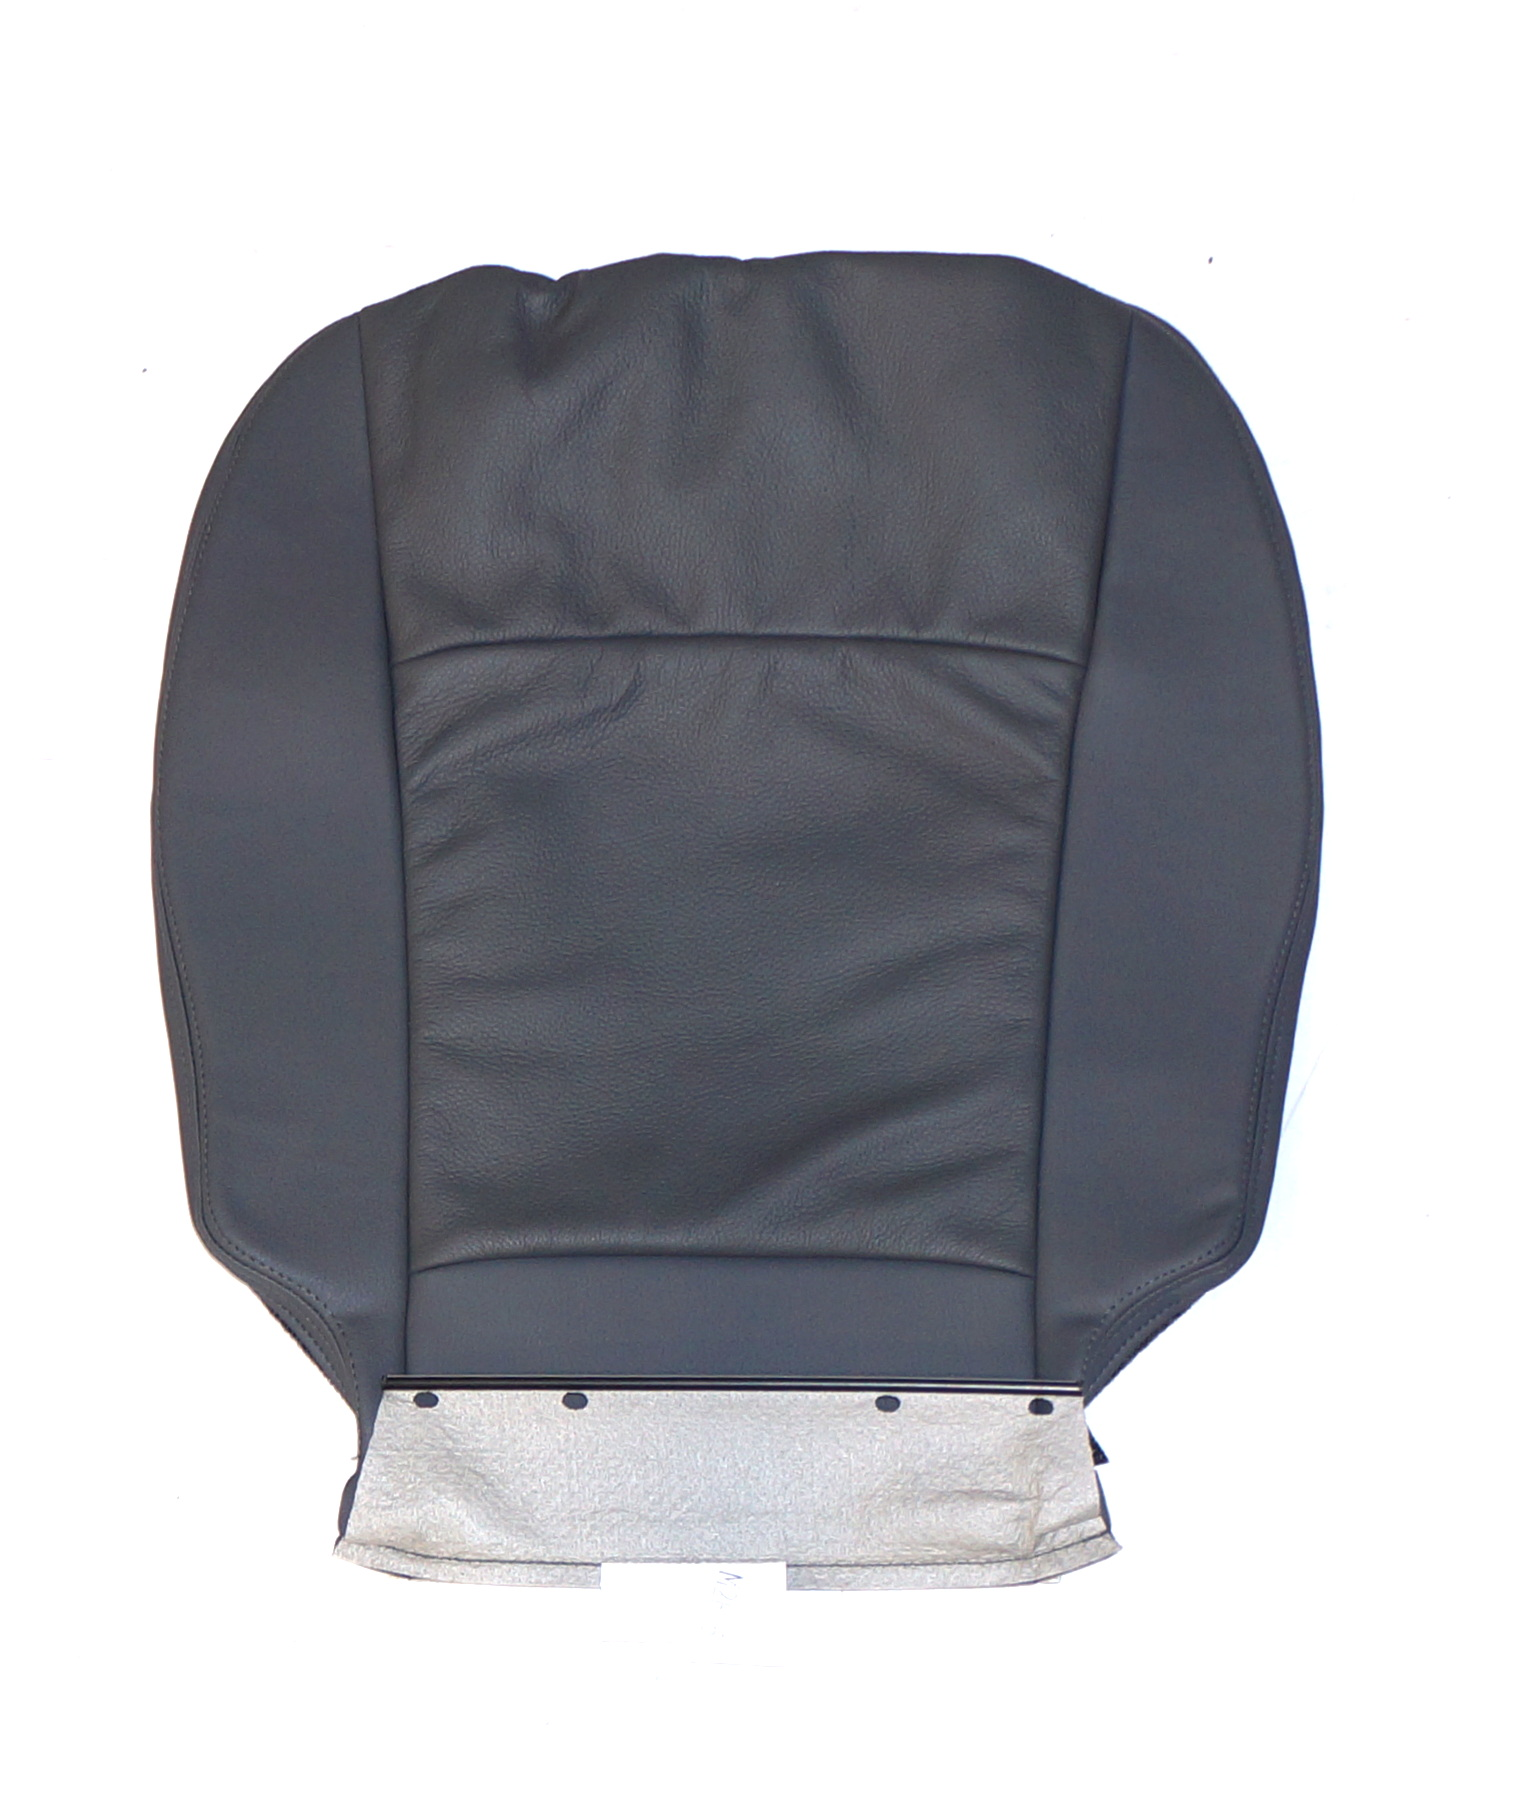 K02,K03 Seat Cover, Front Bottom LH (Driver Side)